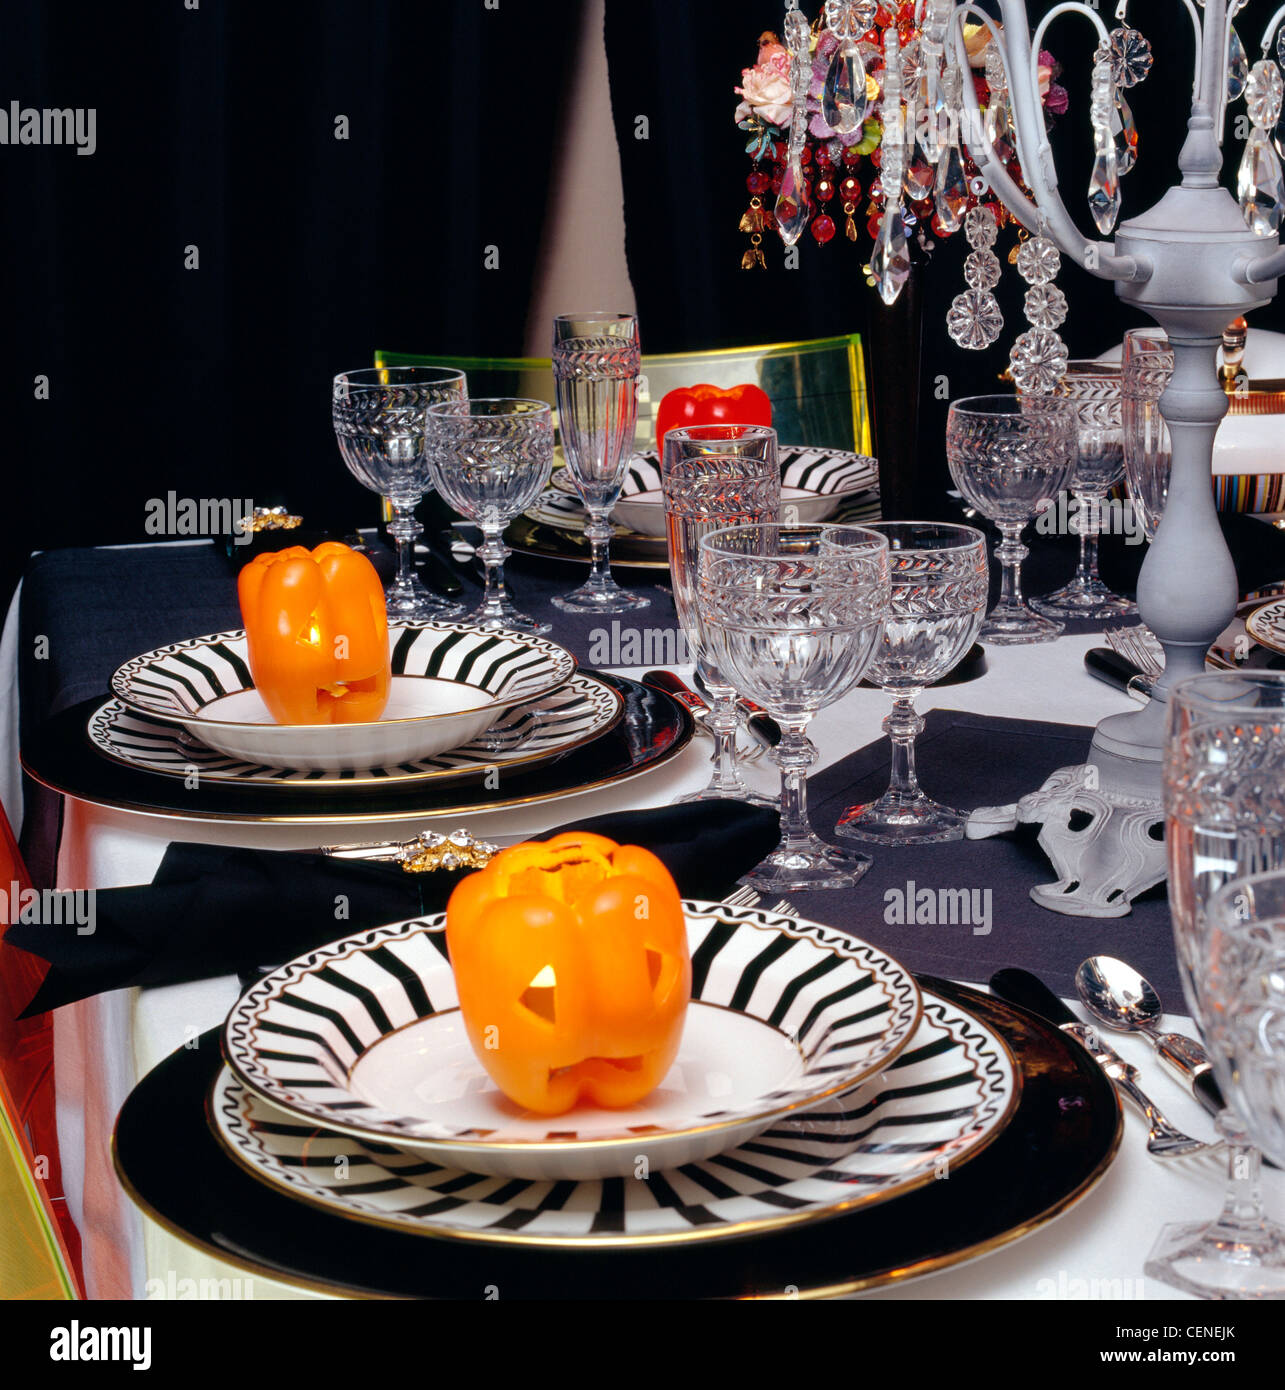 Halloween Tablesetting Table Laid White Tablecloth And Grey Runners, Black  And White Striped Bowls And